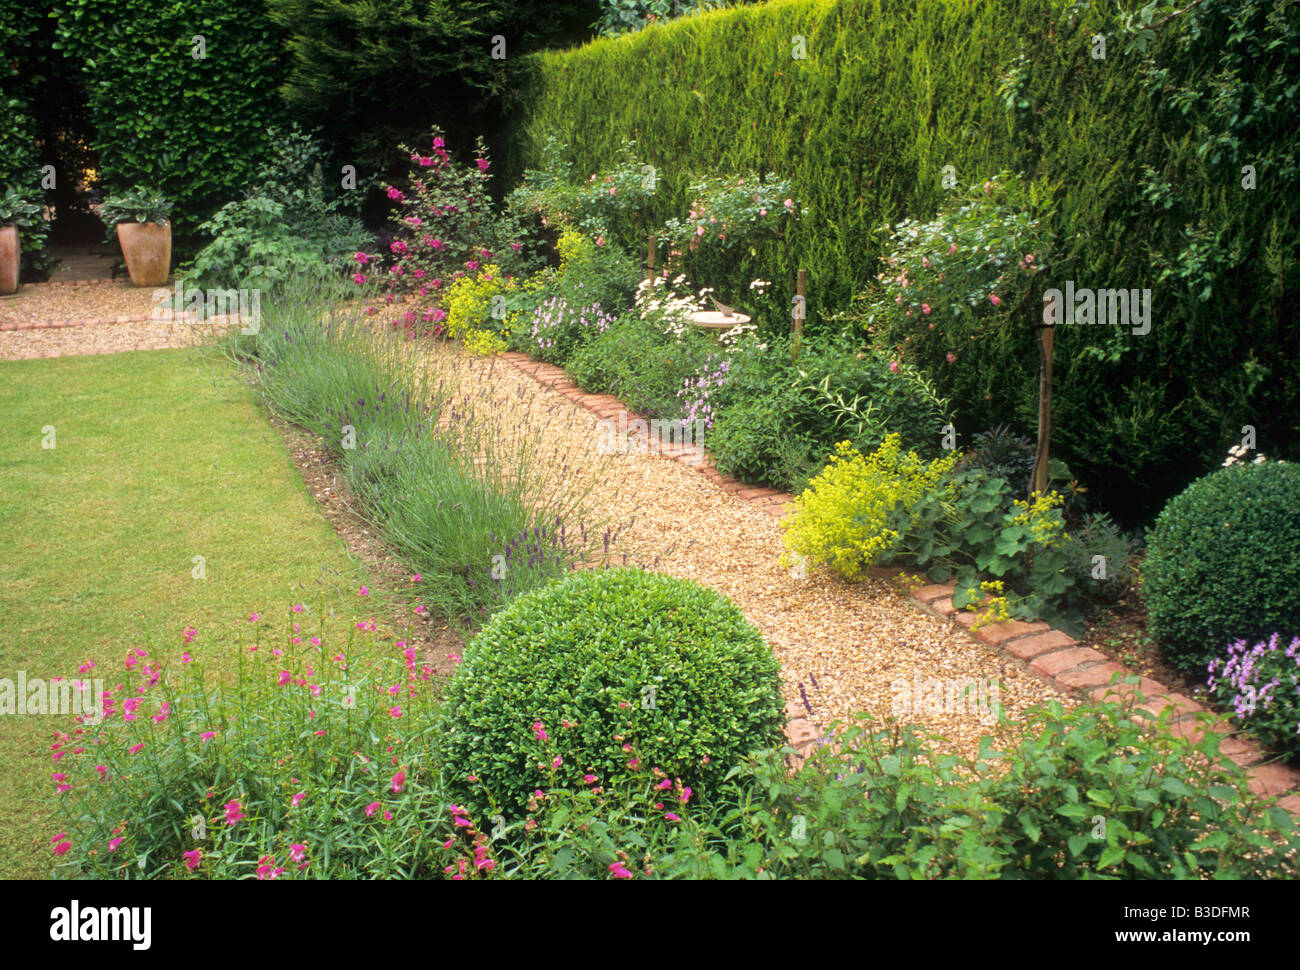 Brick and gravel path hedge lawn Rosa The Fairy rose roses small